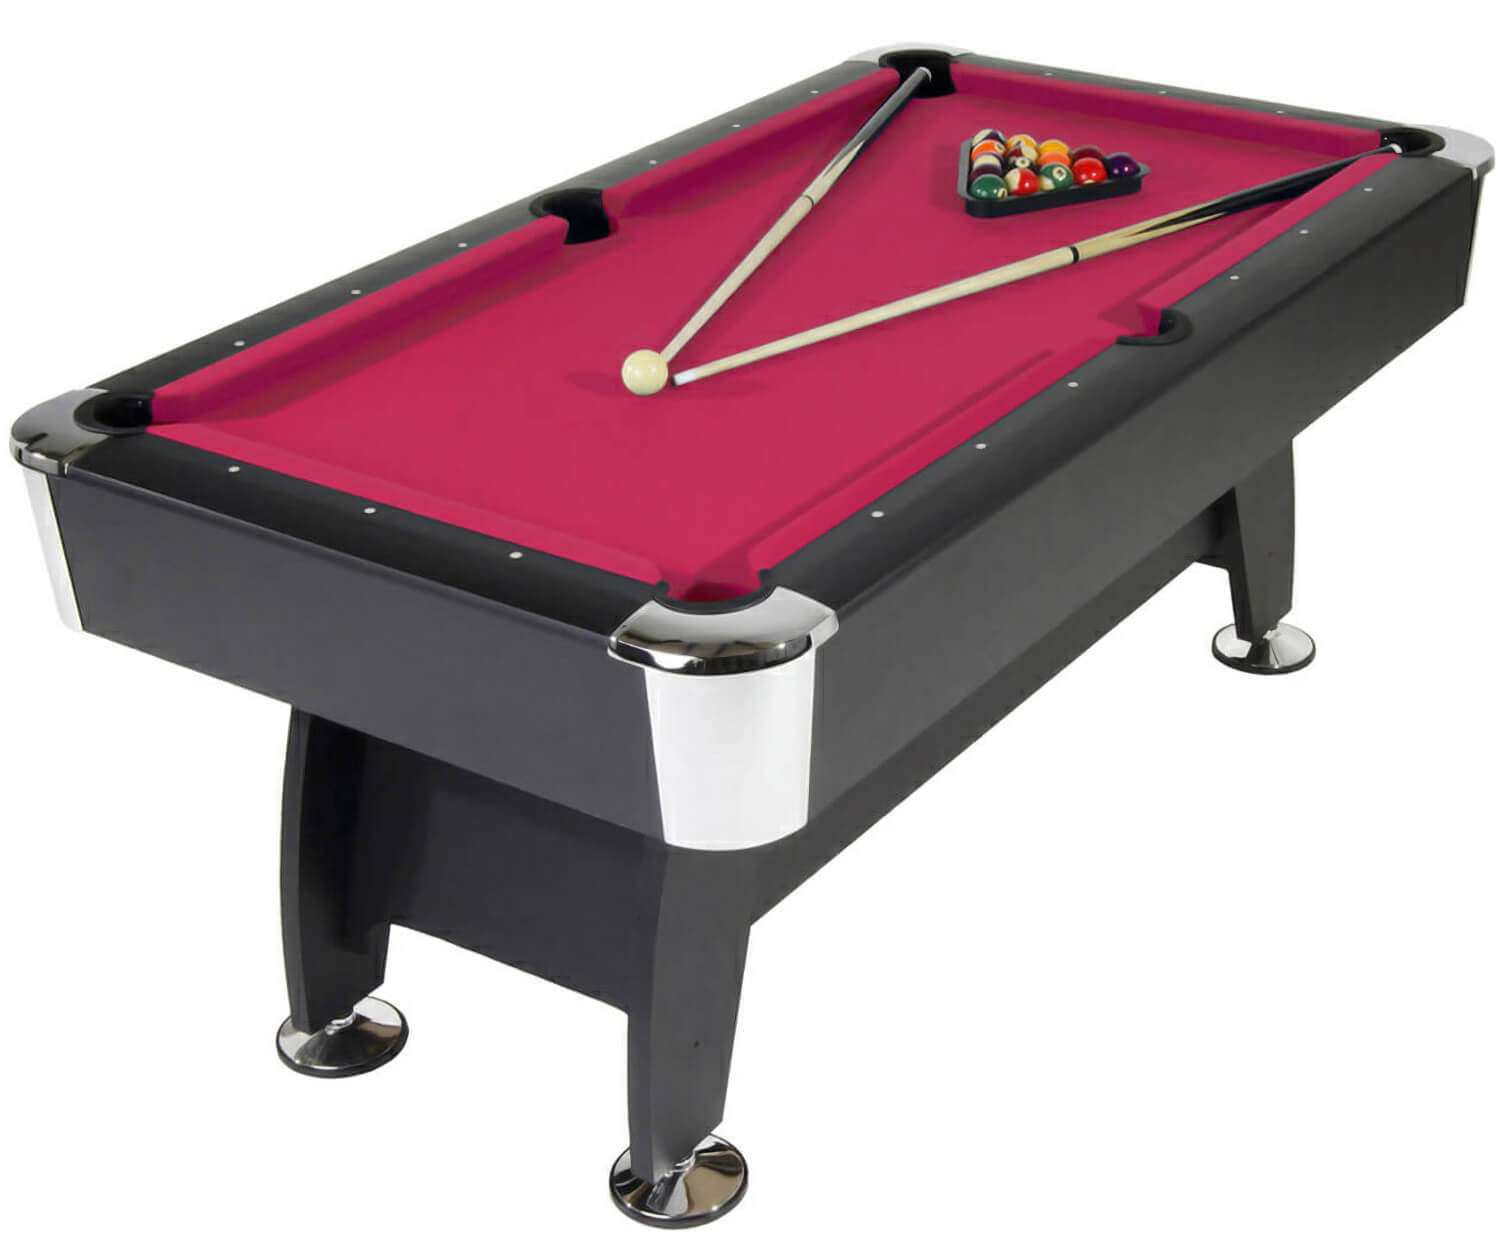 Strikeworth pro american deluxe 6ft pool table liberty games for 10 feet pool table